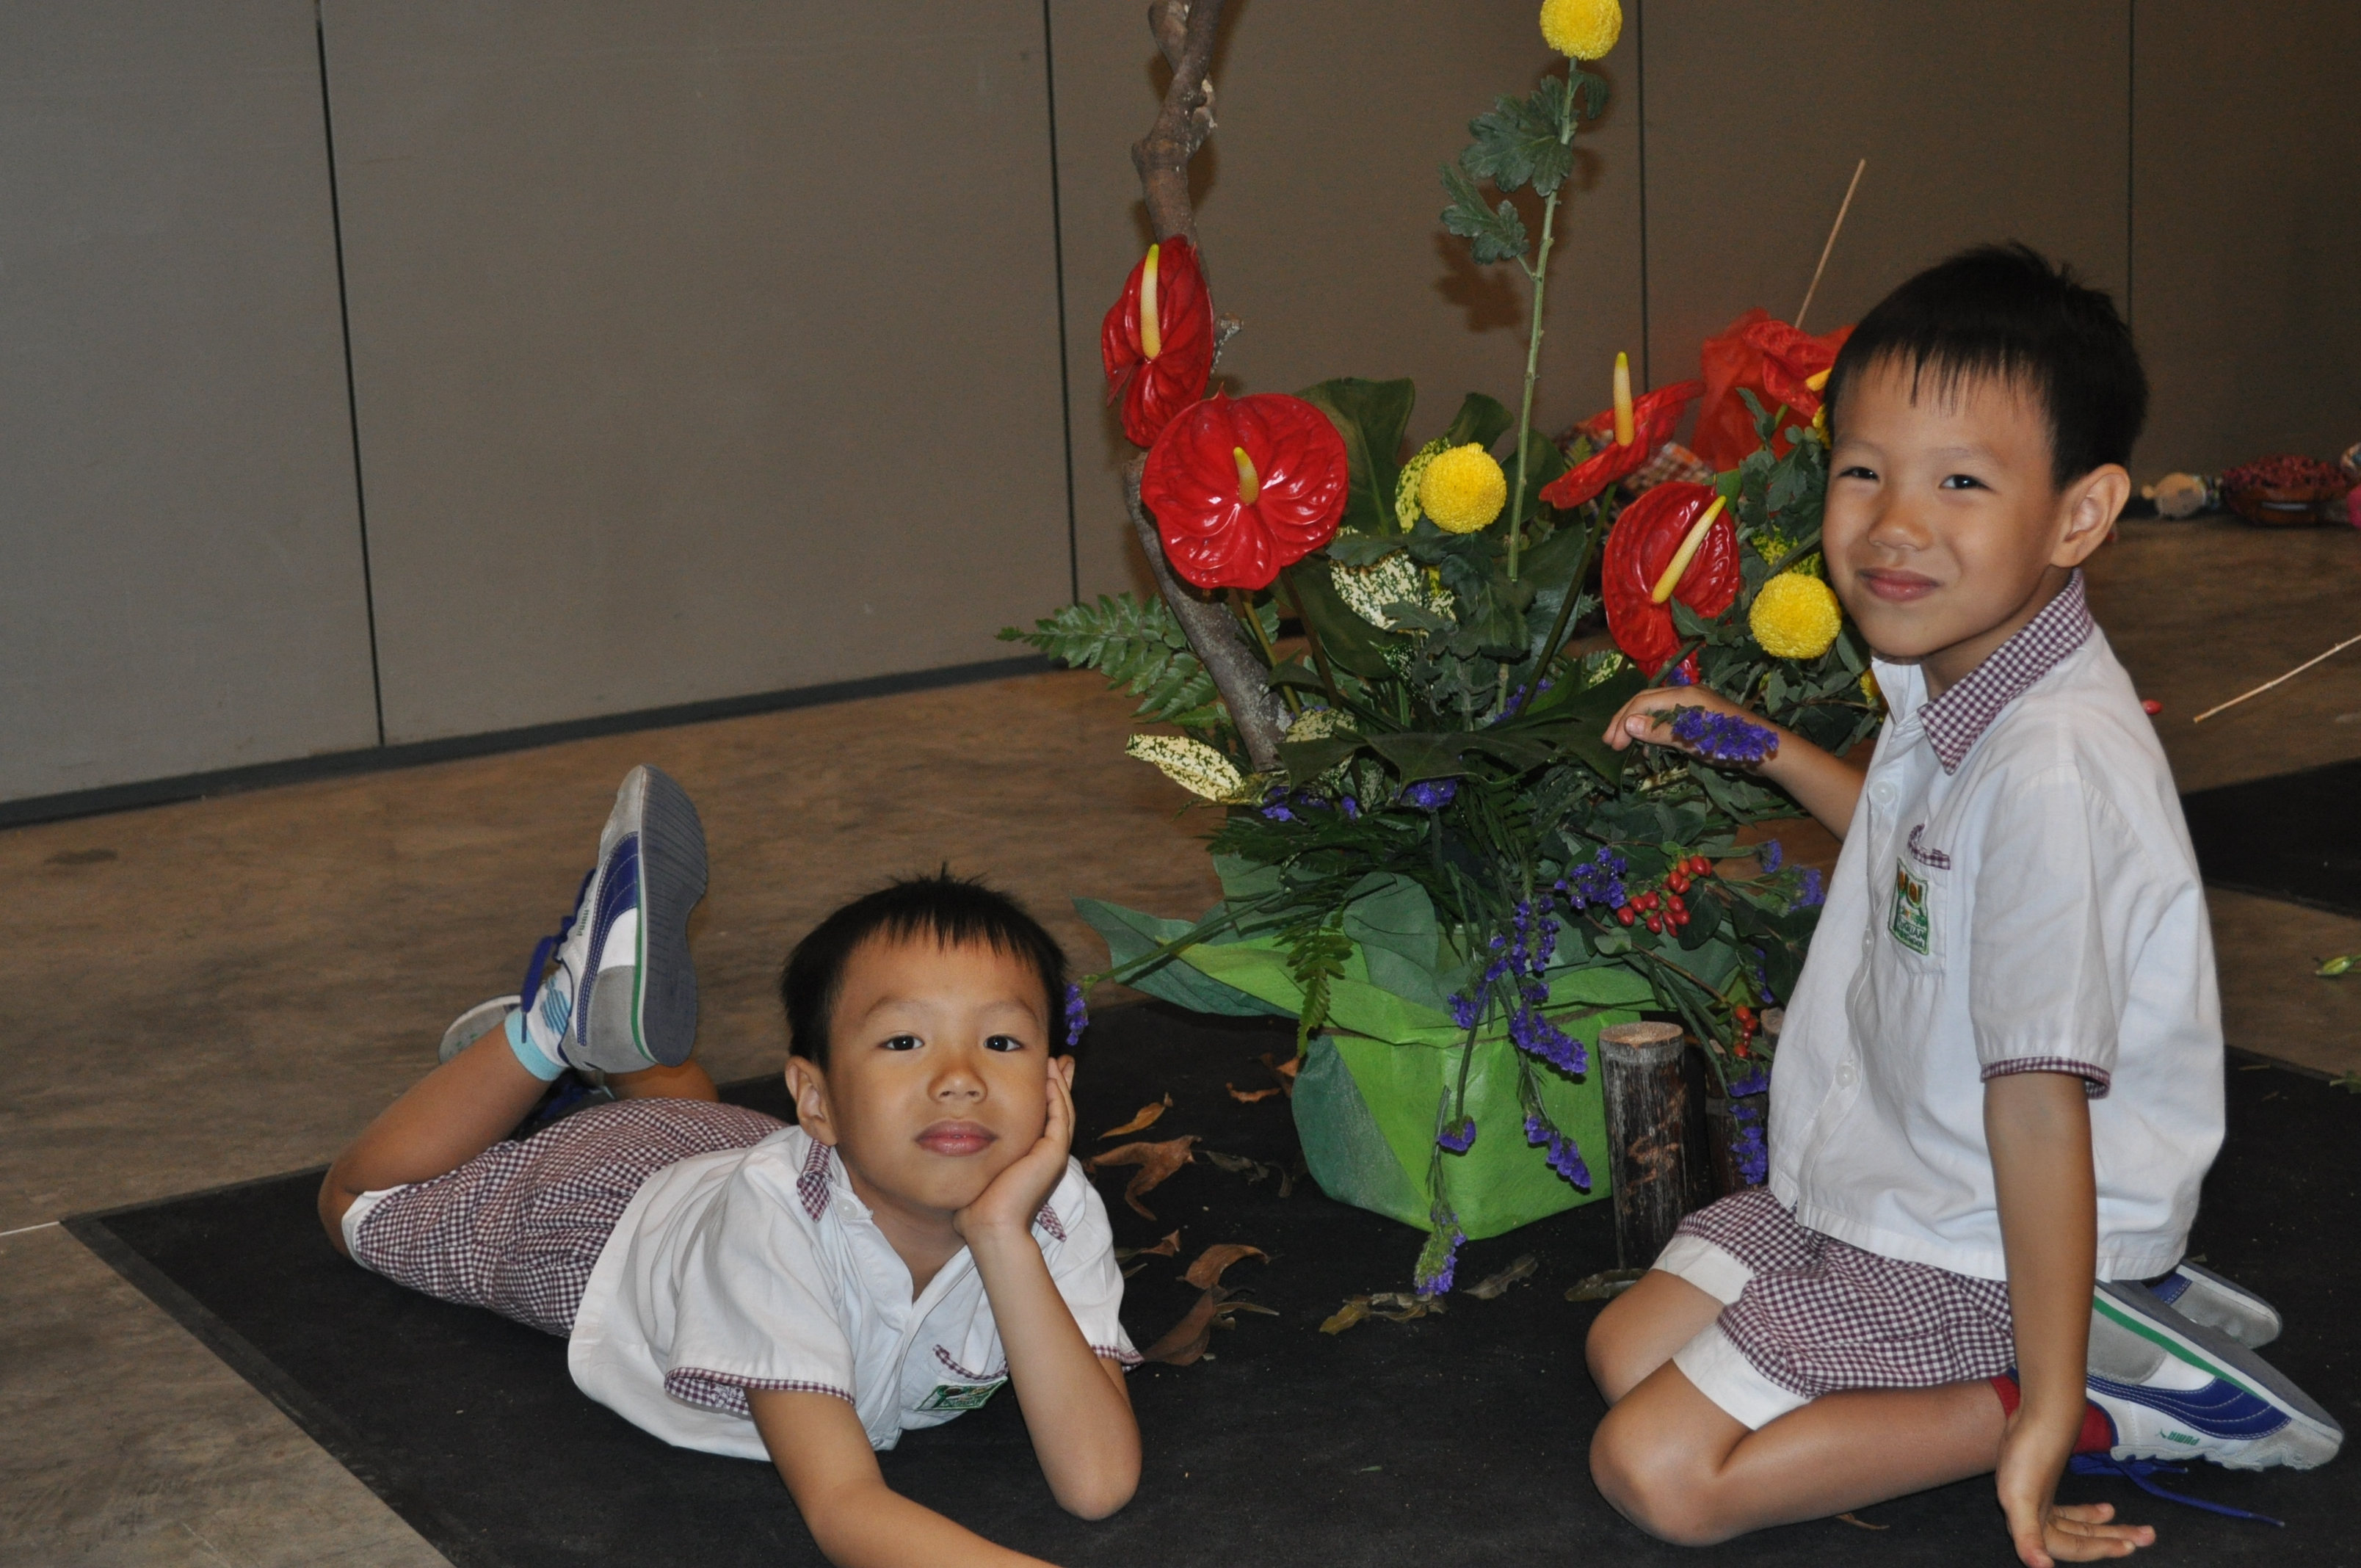 Twin 6-year-old Floral-Arranging Geniuses